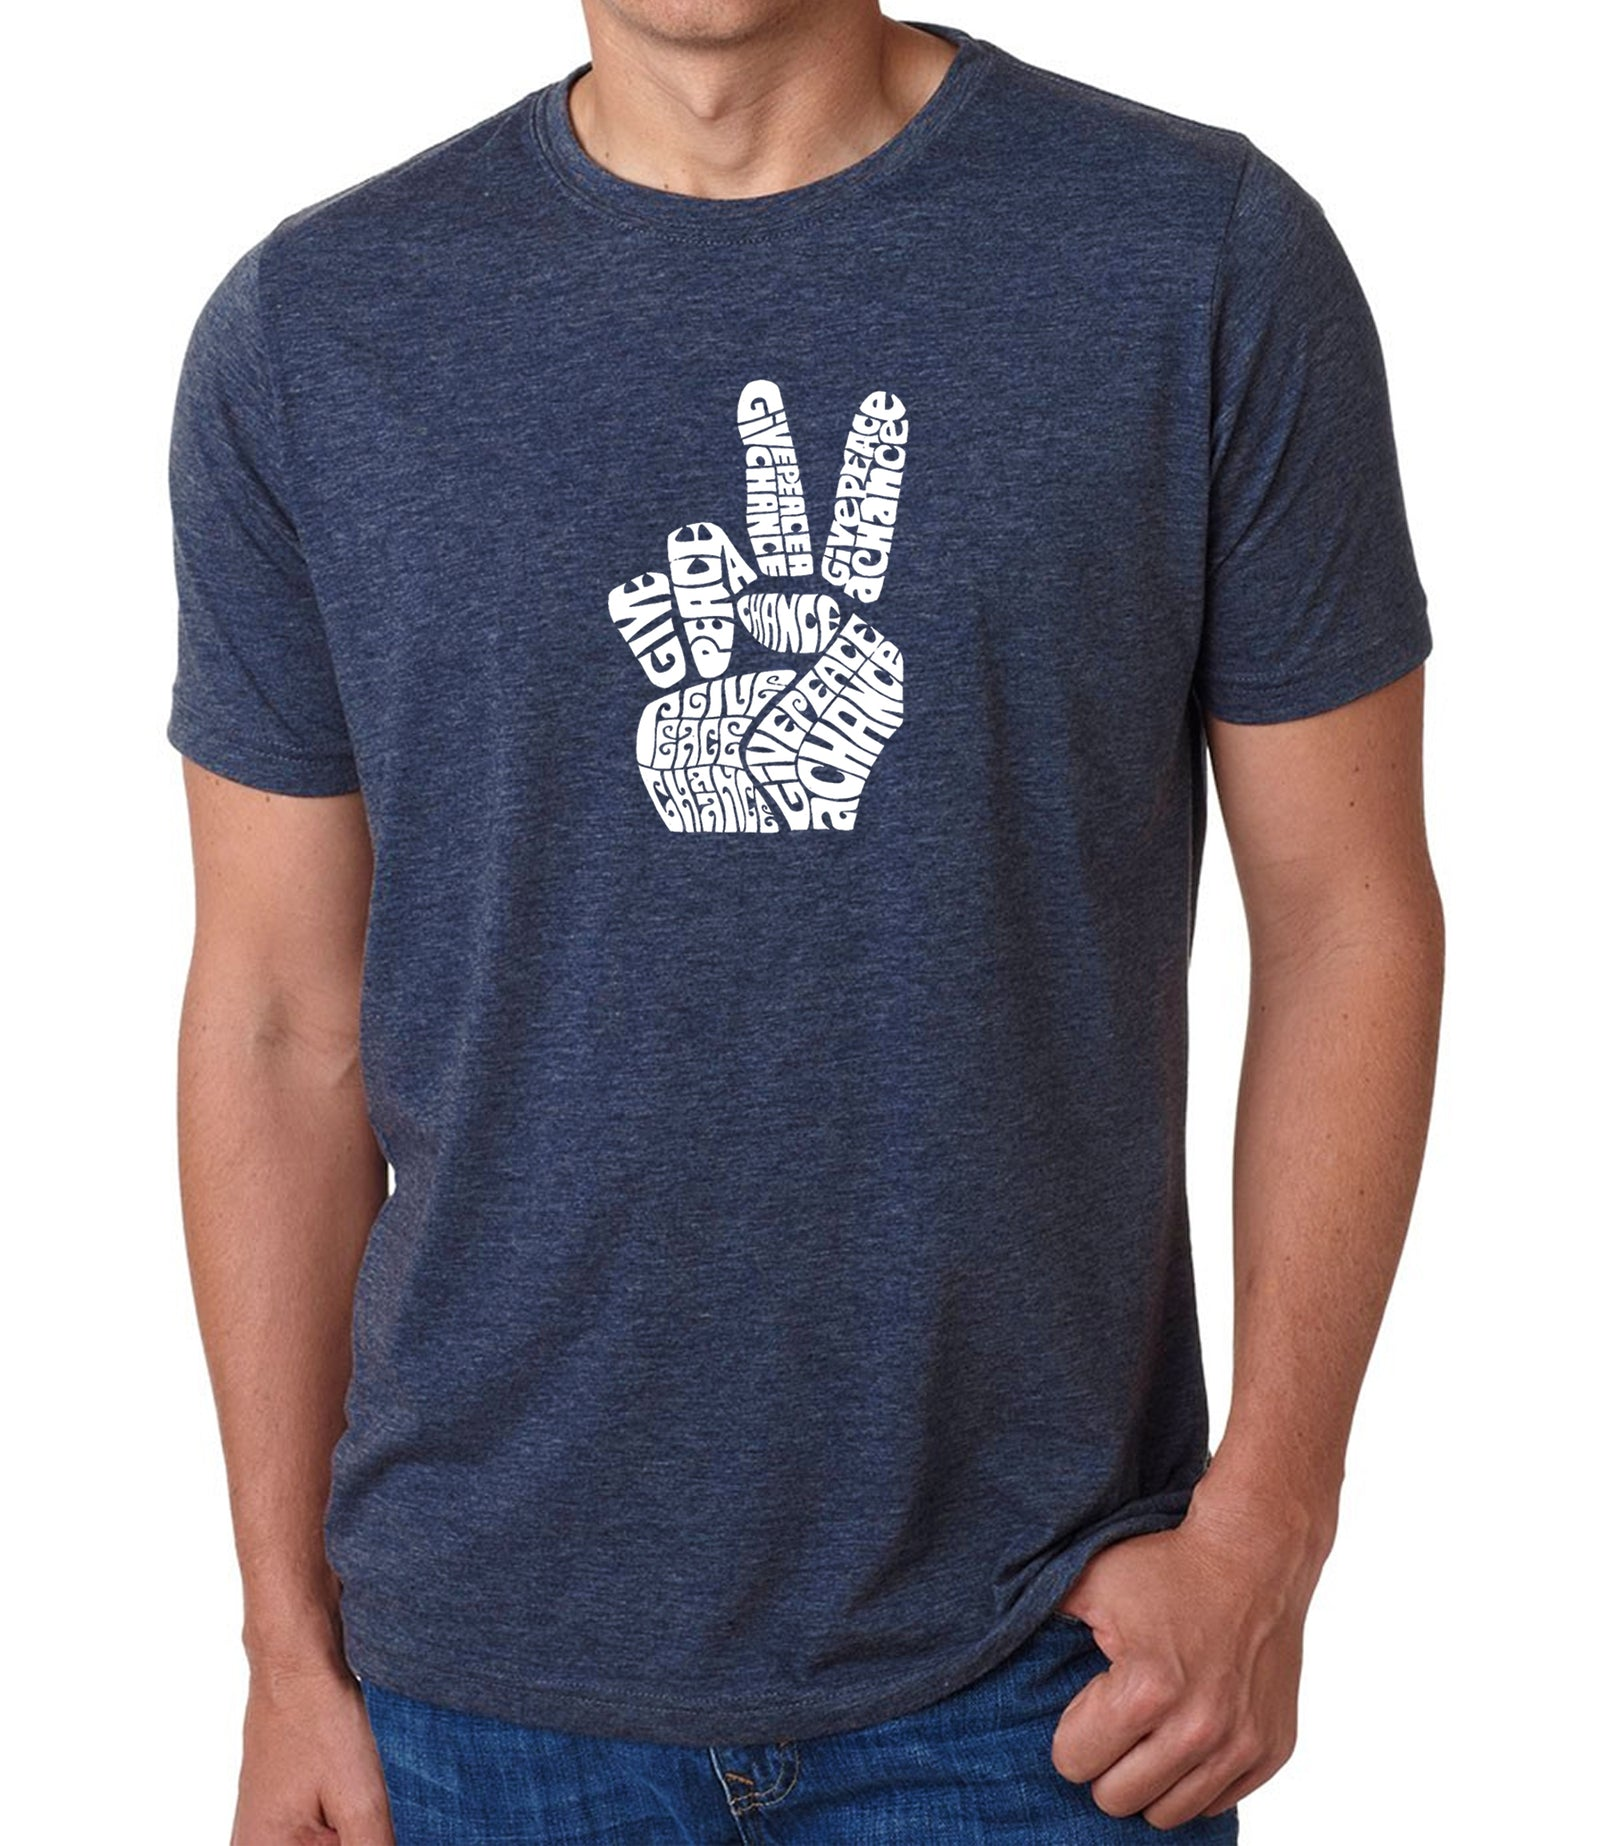 Men's Premium Blend Word Art T-shirt - PEACE FINGERS